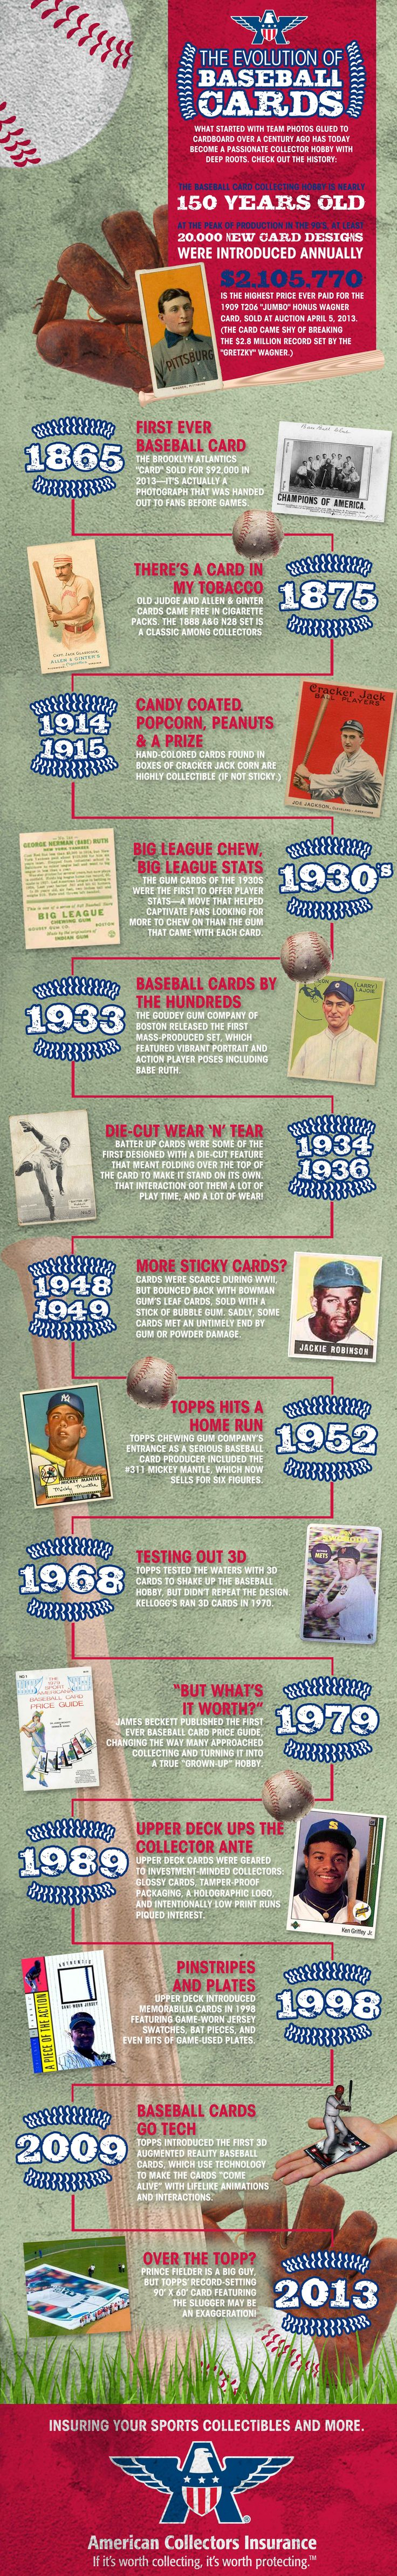 """Collecting baseball cards is still strong with hobbyists. The cardboard format has changed slightly over the years, improving in quality as novelty gimmicks came and went. The most recent page of card collecting history highlights the T206 Honus Wagner """"Jumbo"""" card, among the rarest and most valuable. It was sold at auction Friday, April 5, 2013 for 2.1 million dollars. Share this #infographic with your favorite #collector!"""